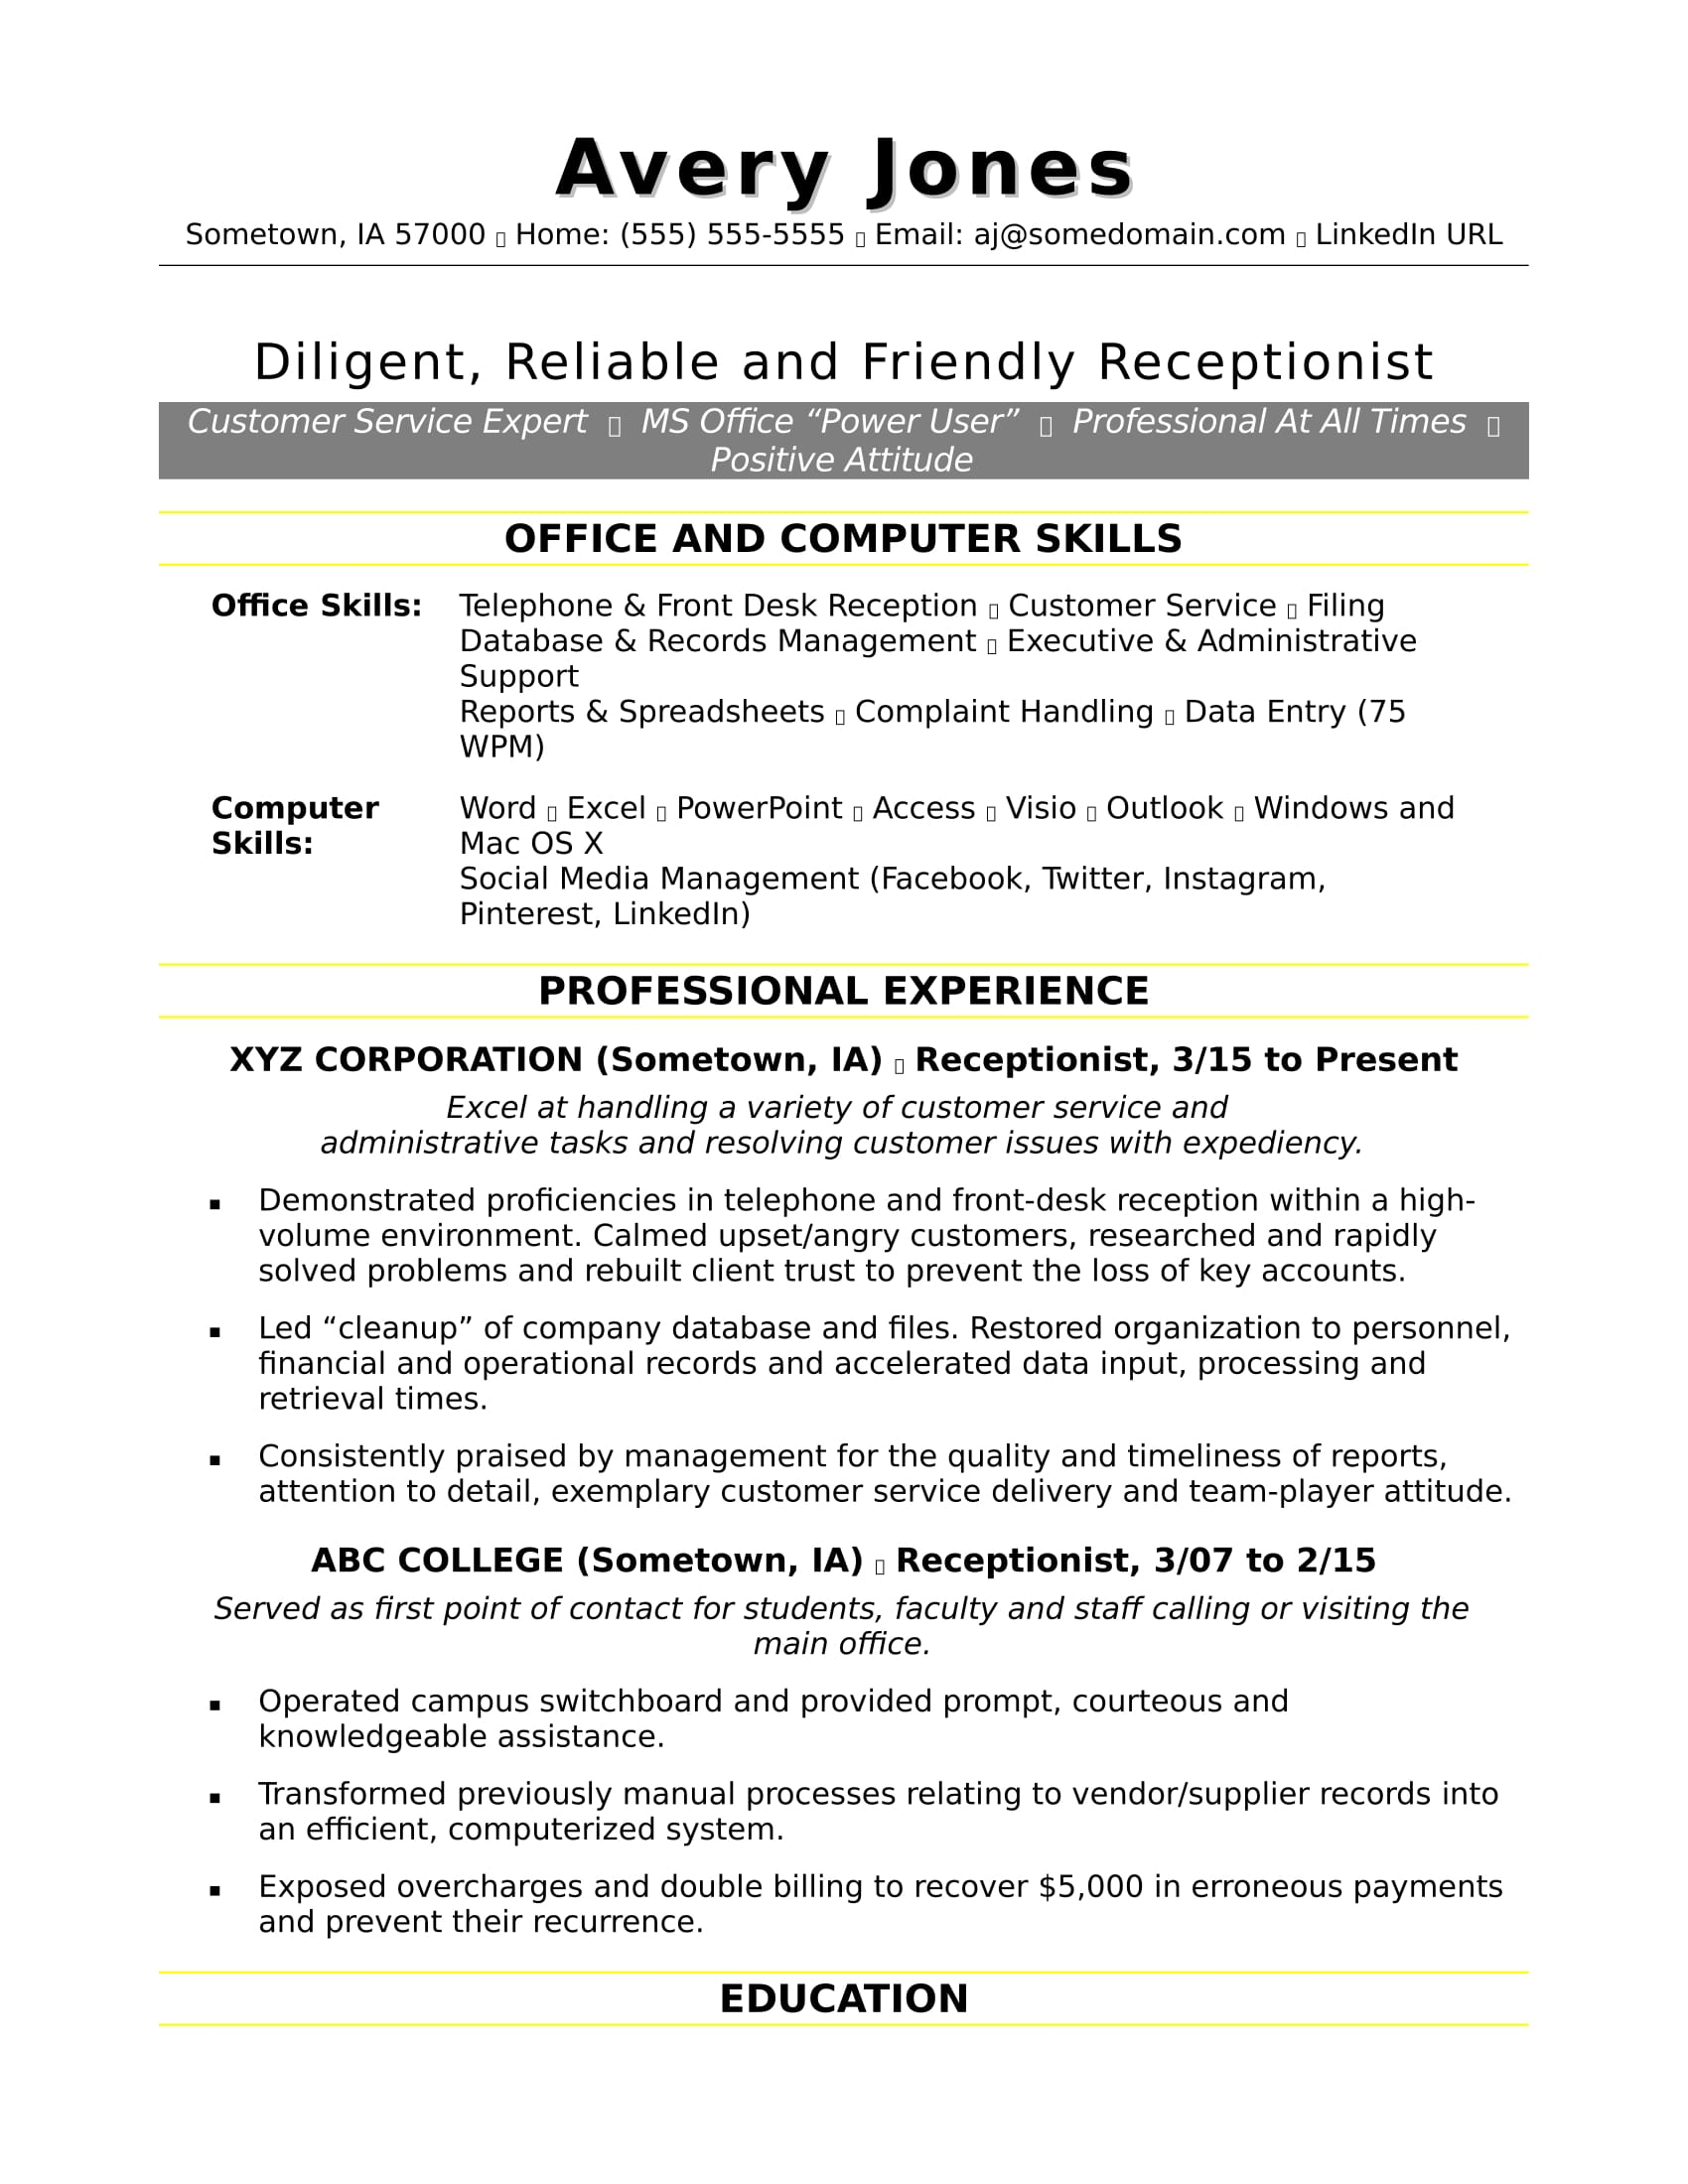 Sample Resume For A Receptionist  Best Skills For A Resume